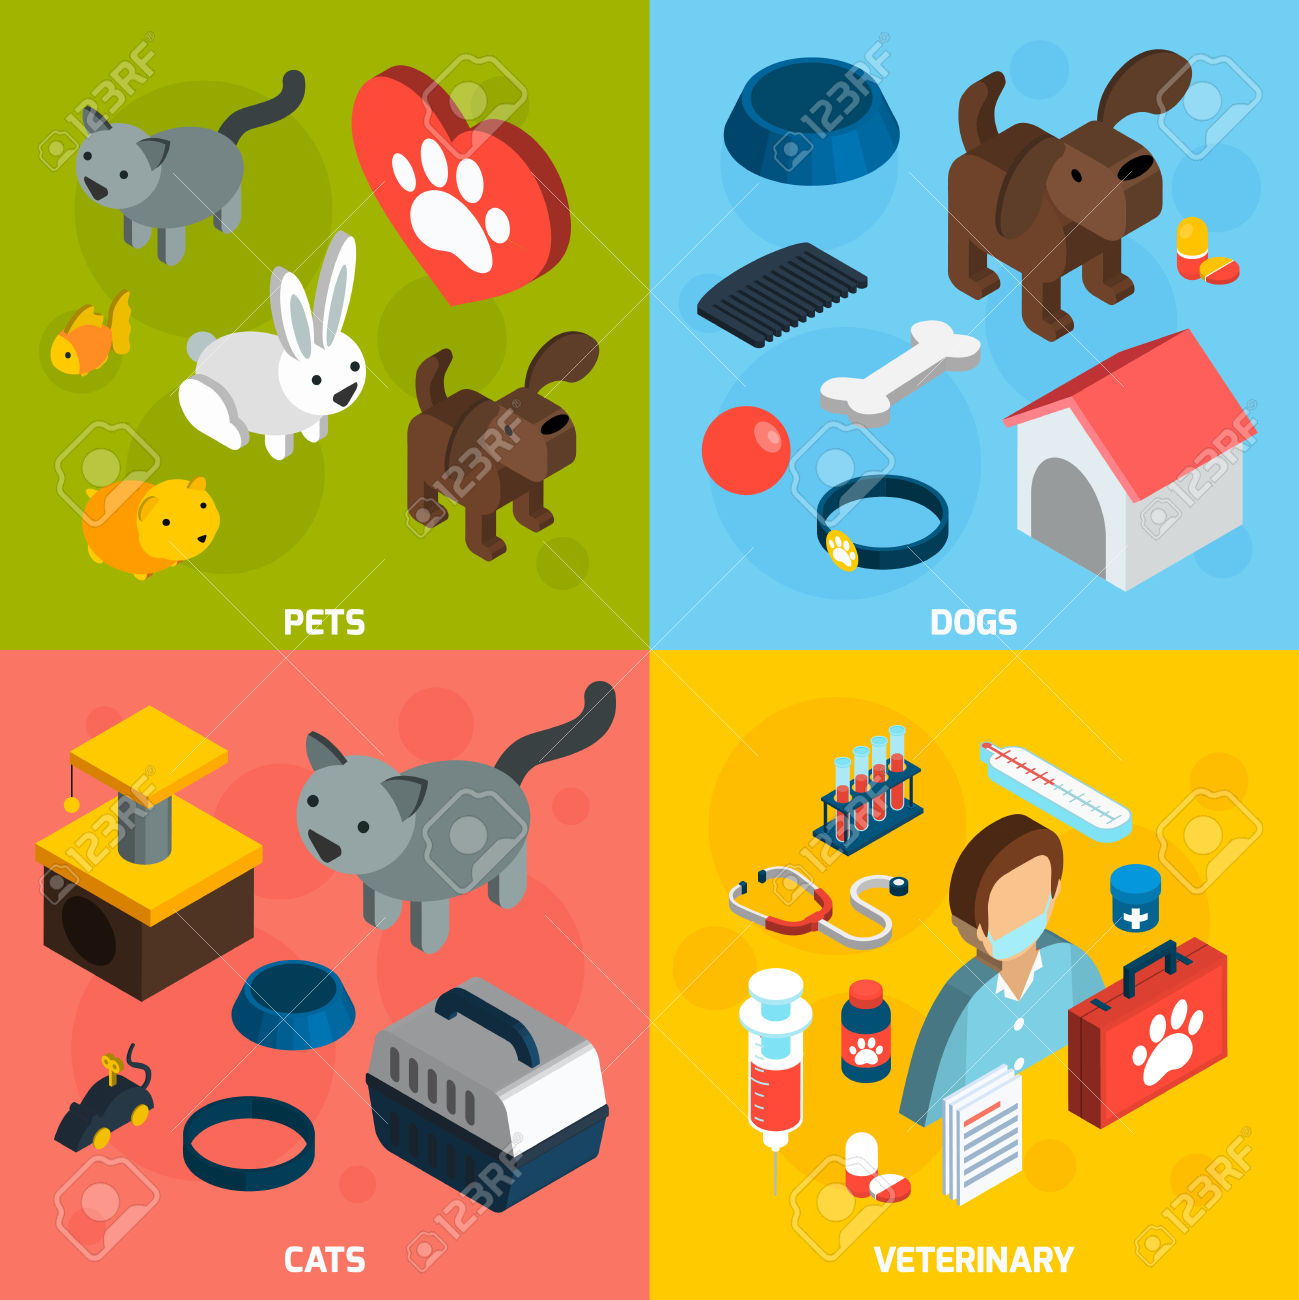 6,045 Veterinary Clinic Stock Vector Illustration And Royalty Free.